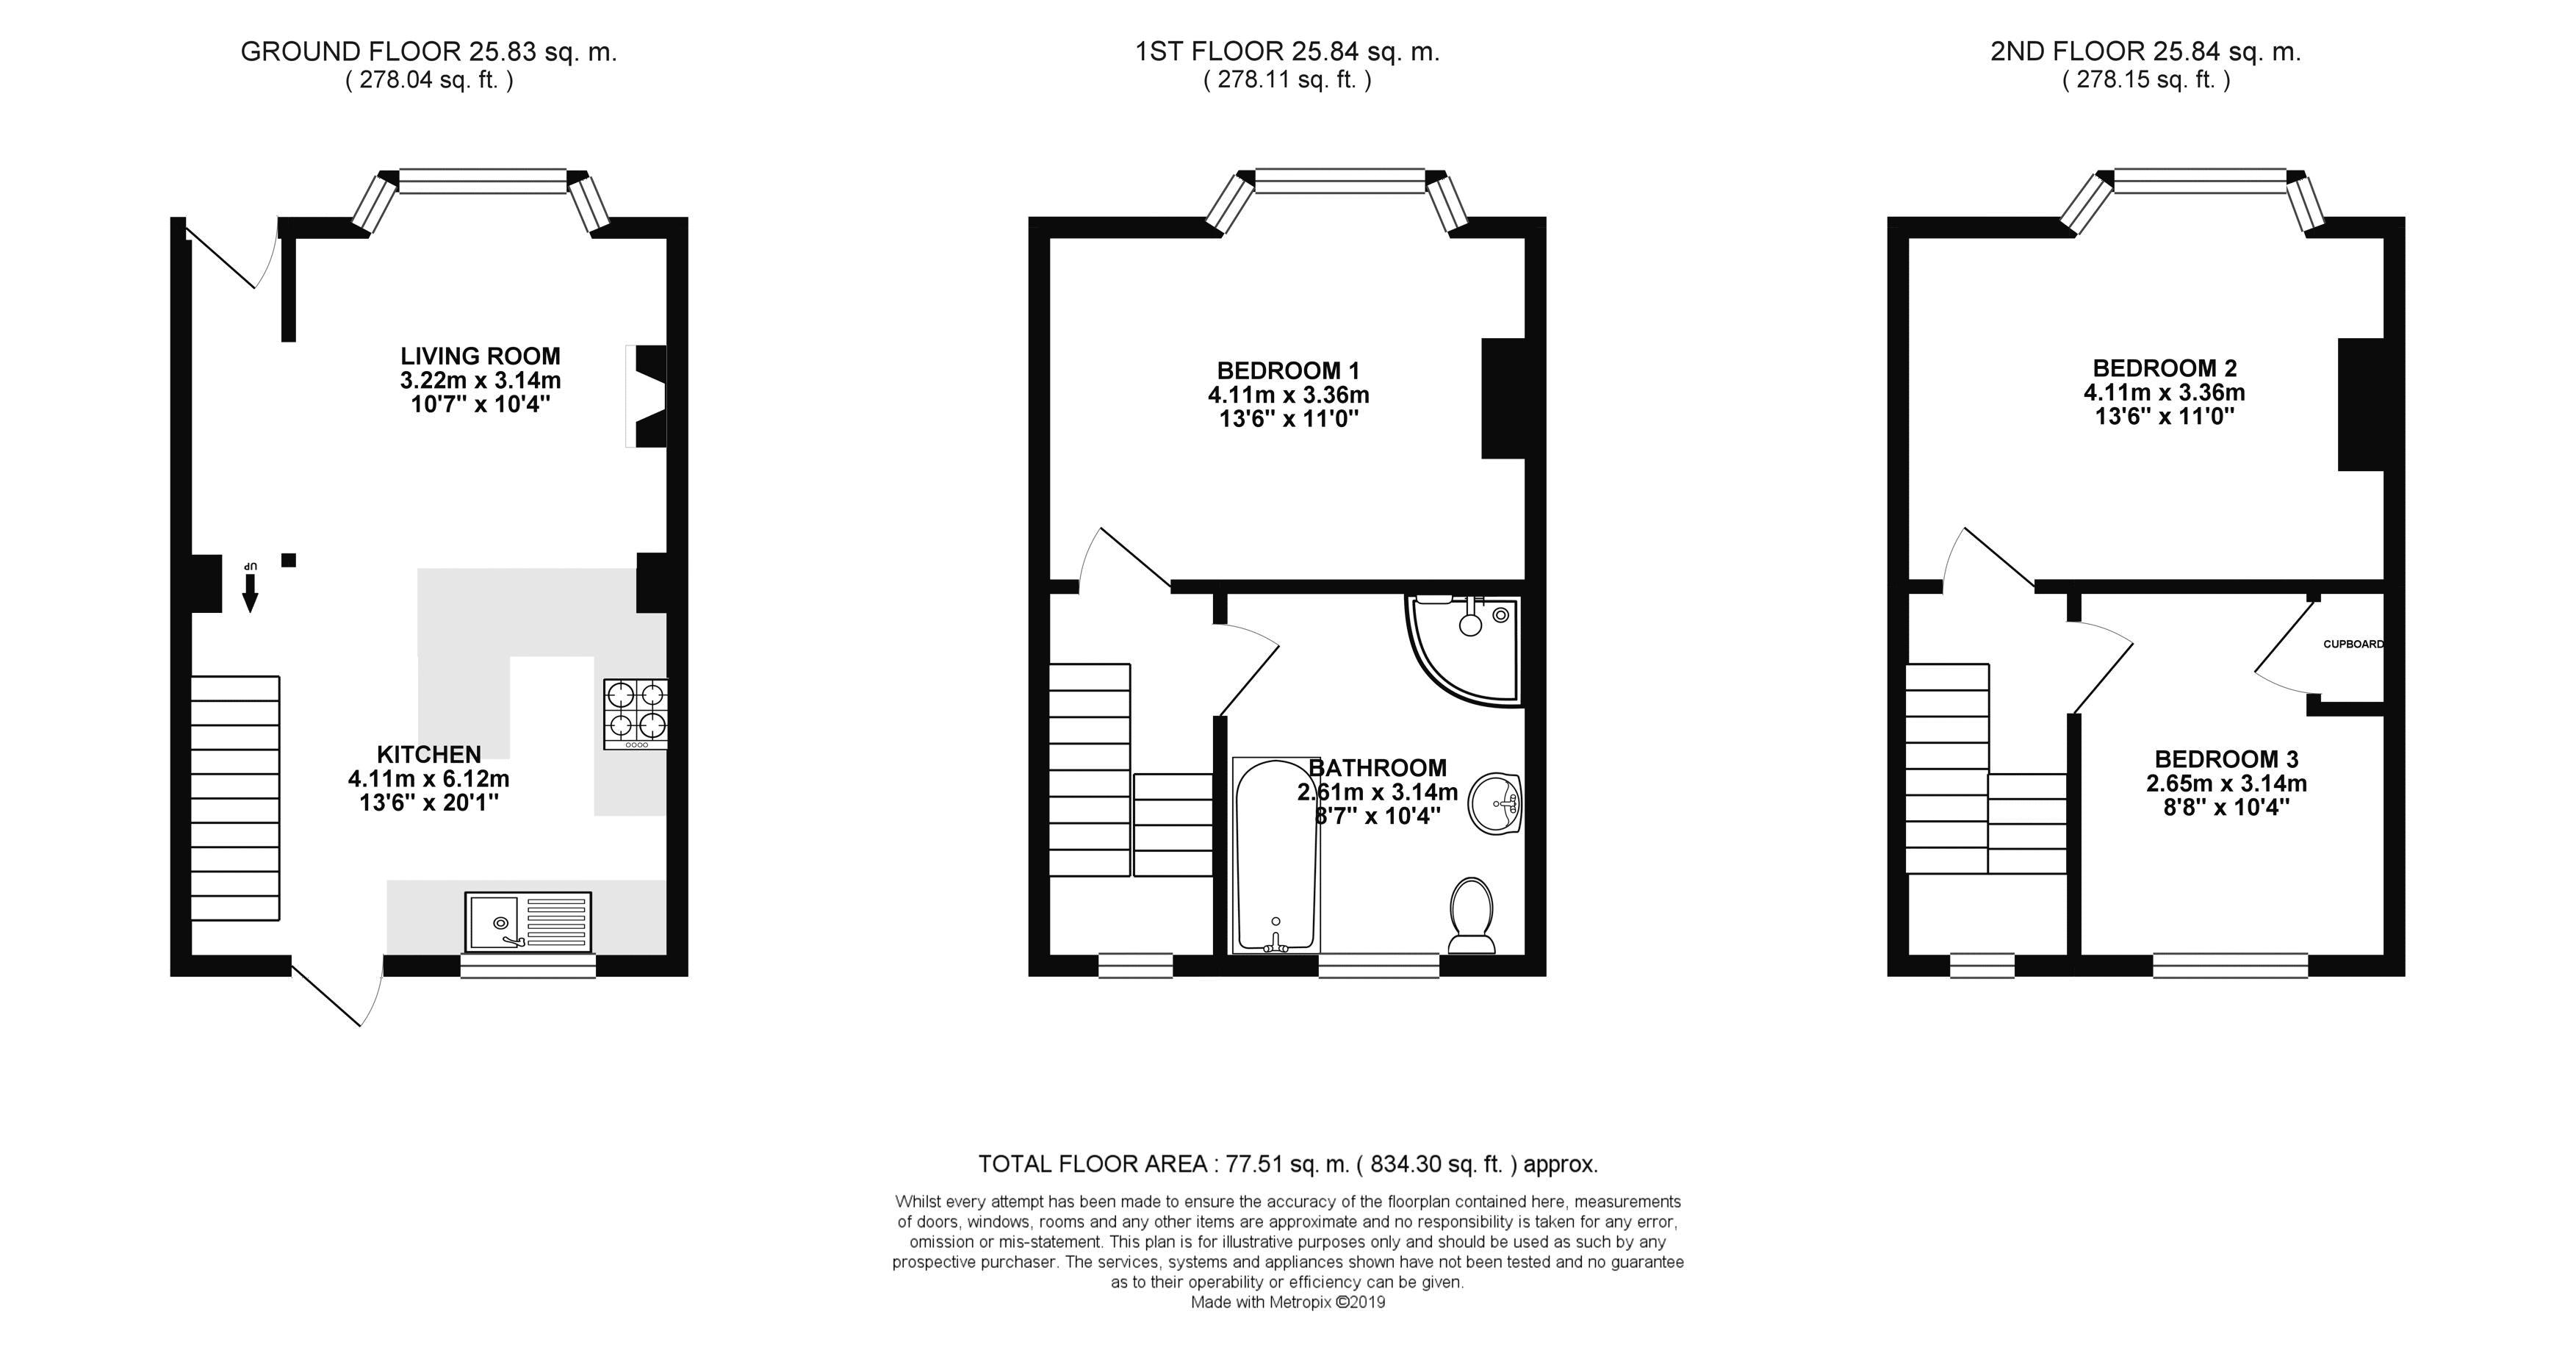 Floor plans for St. Martins Place, Brighton property for sale in Lewes Road South, Brighton by Coapt